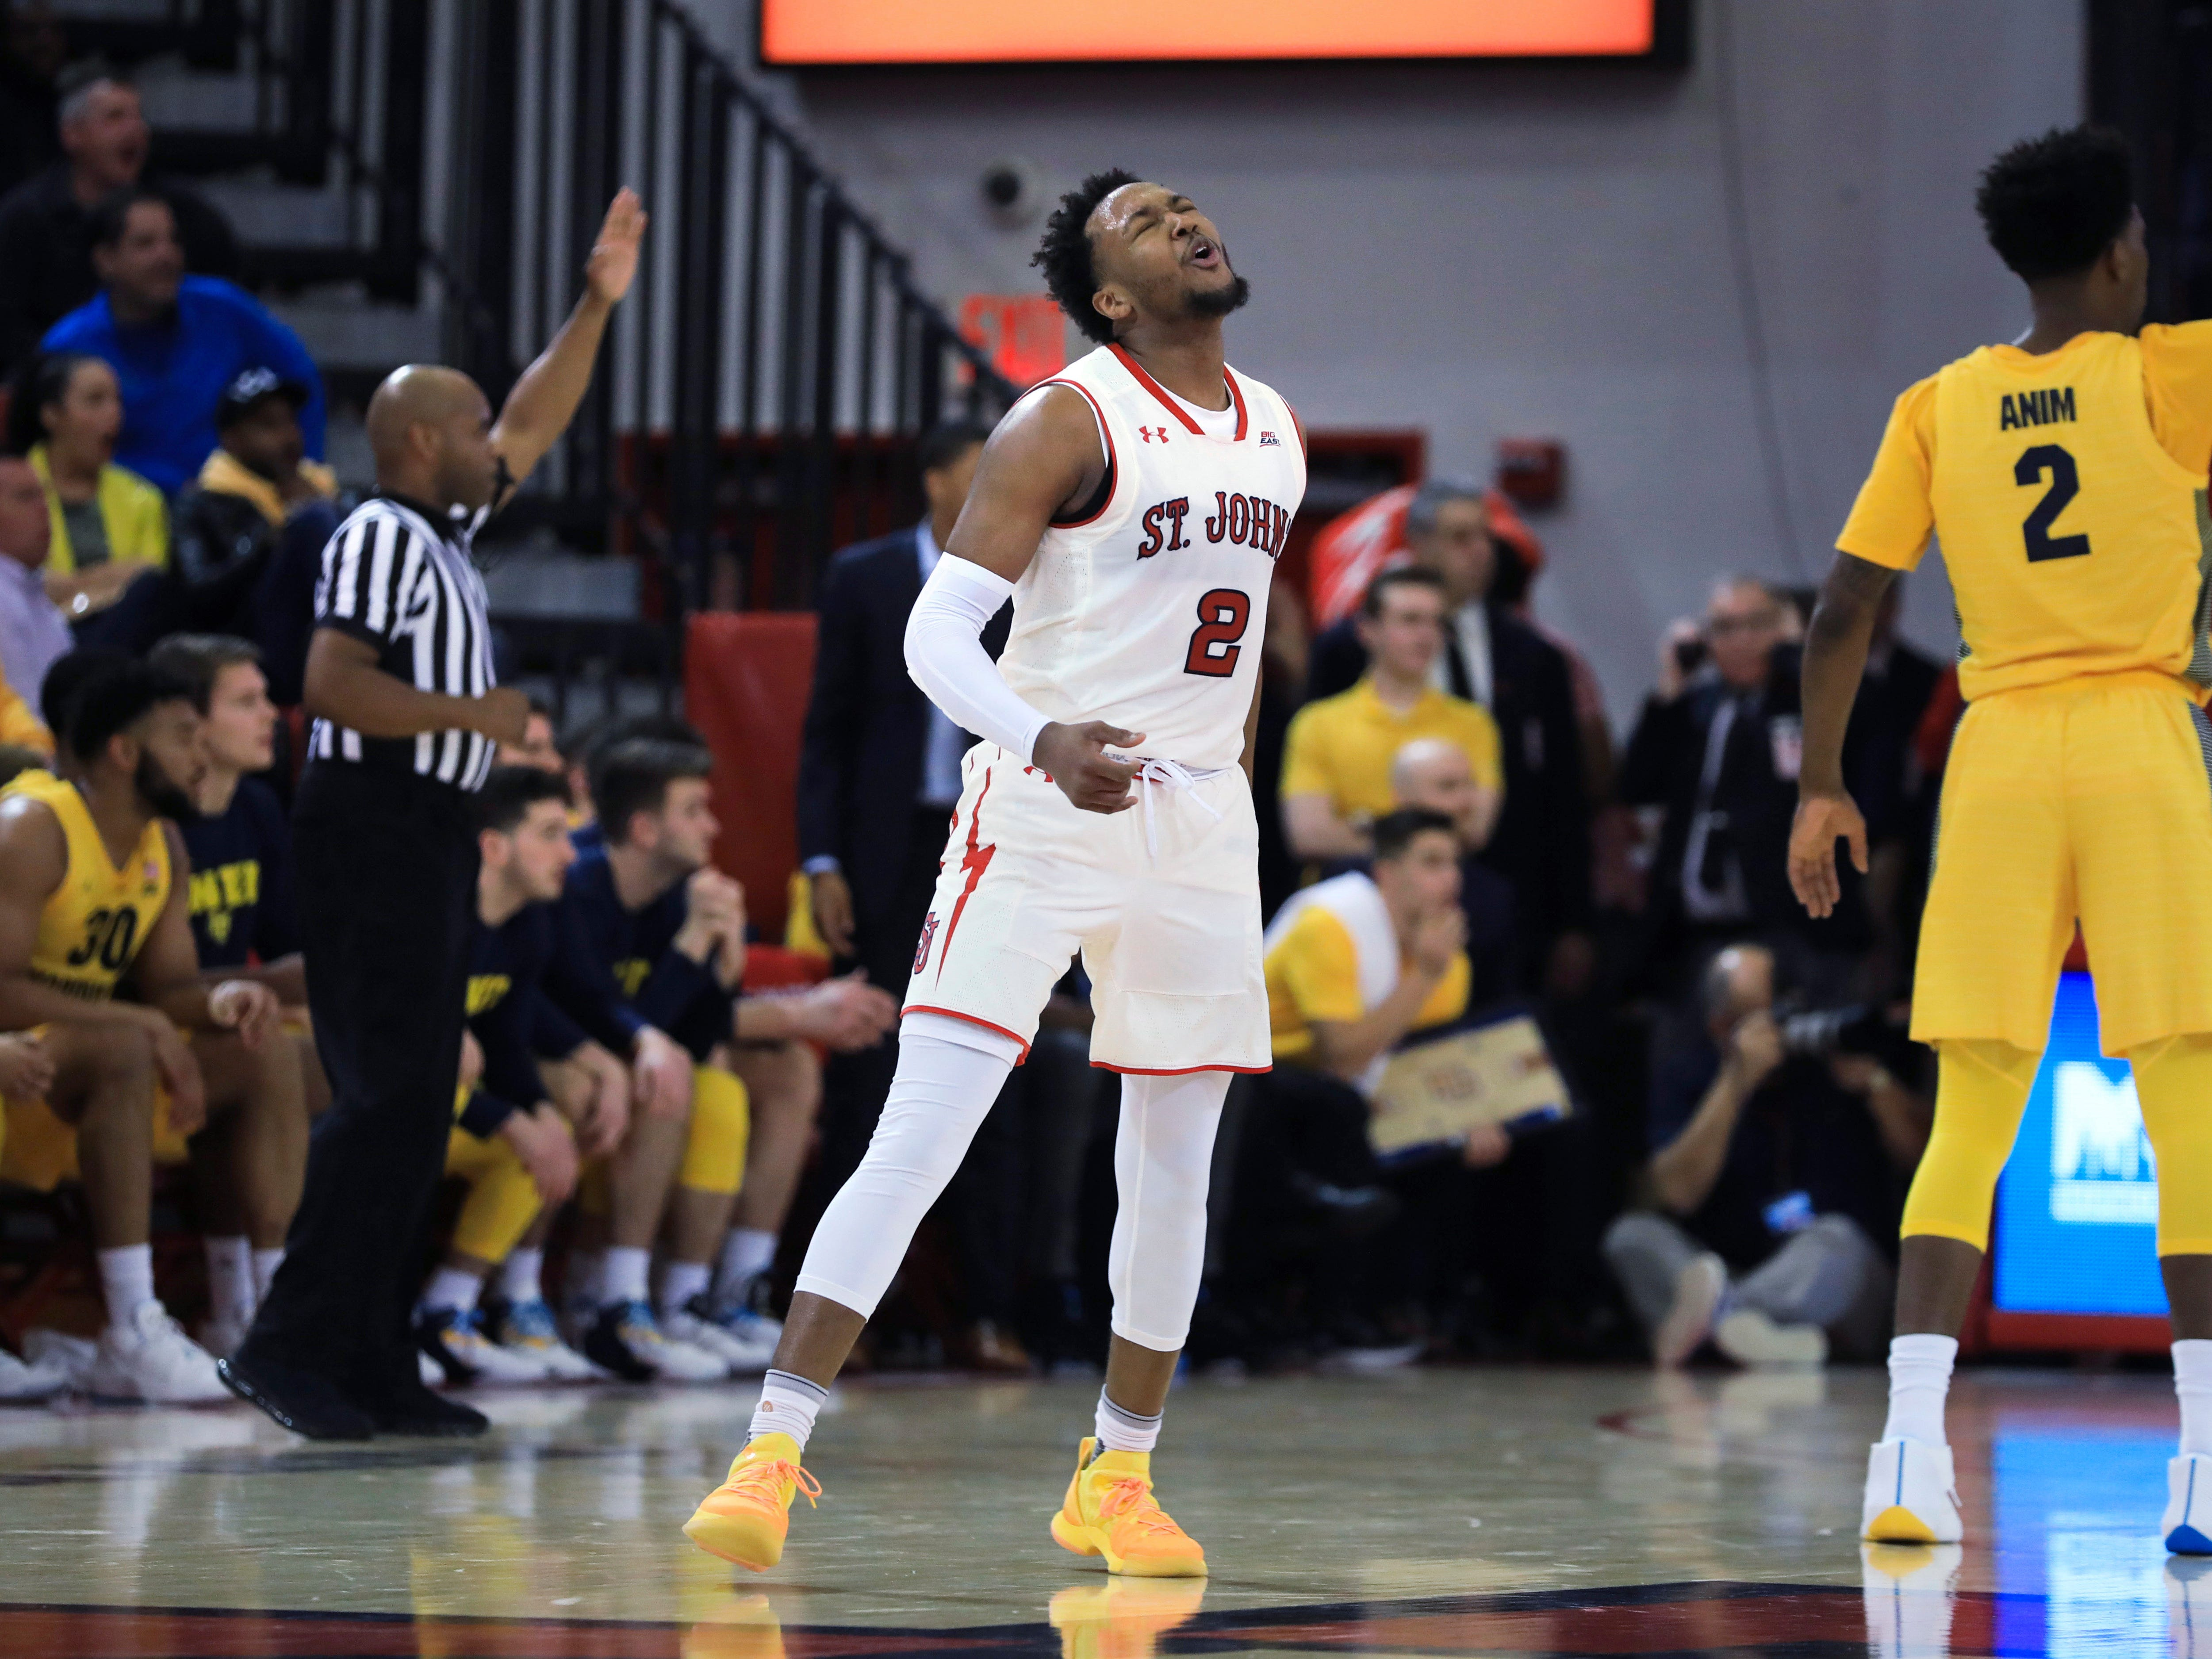 St. John's guard Shamorie Ponds winces after missing a shot during the first half of an NCAA college basketball game against Marquette on Tuesday, Jan. 1, 2019, in New York. (AP Photo/Kevin Hagen). ORG XMIT: NYKH107